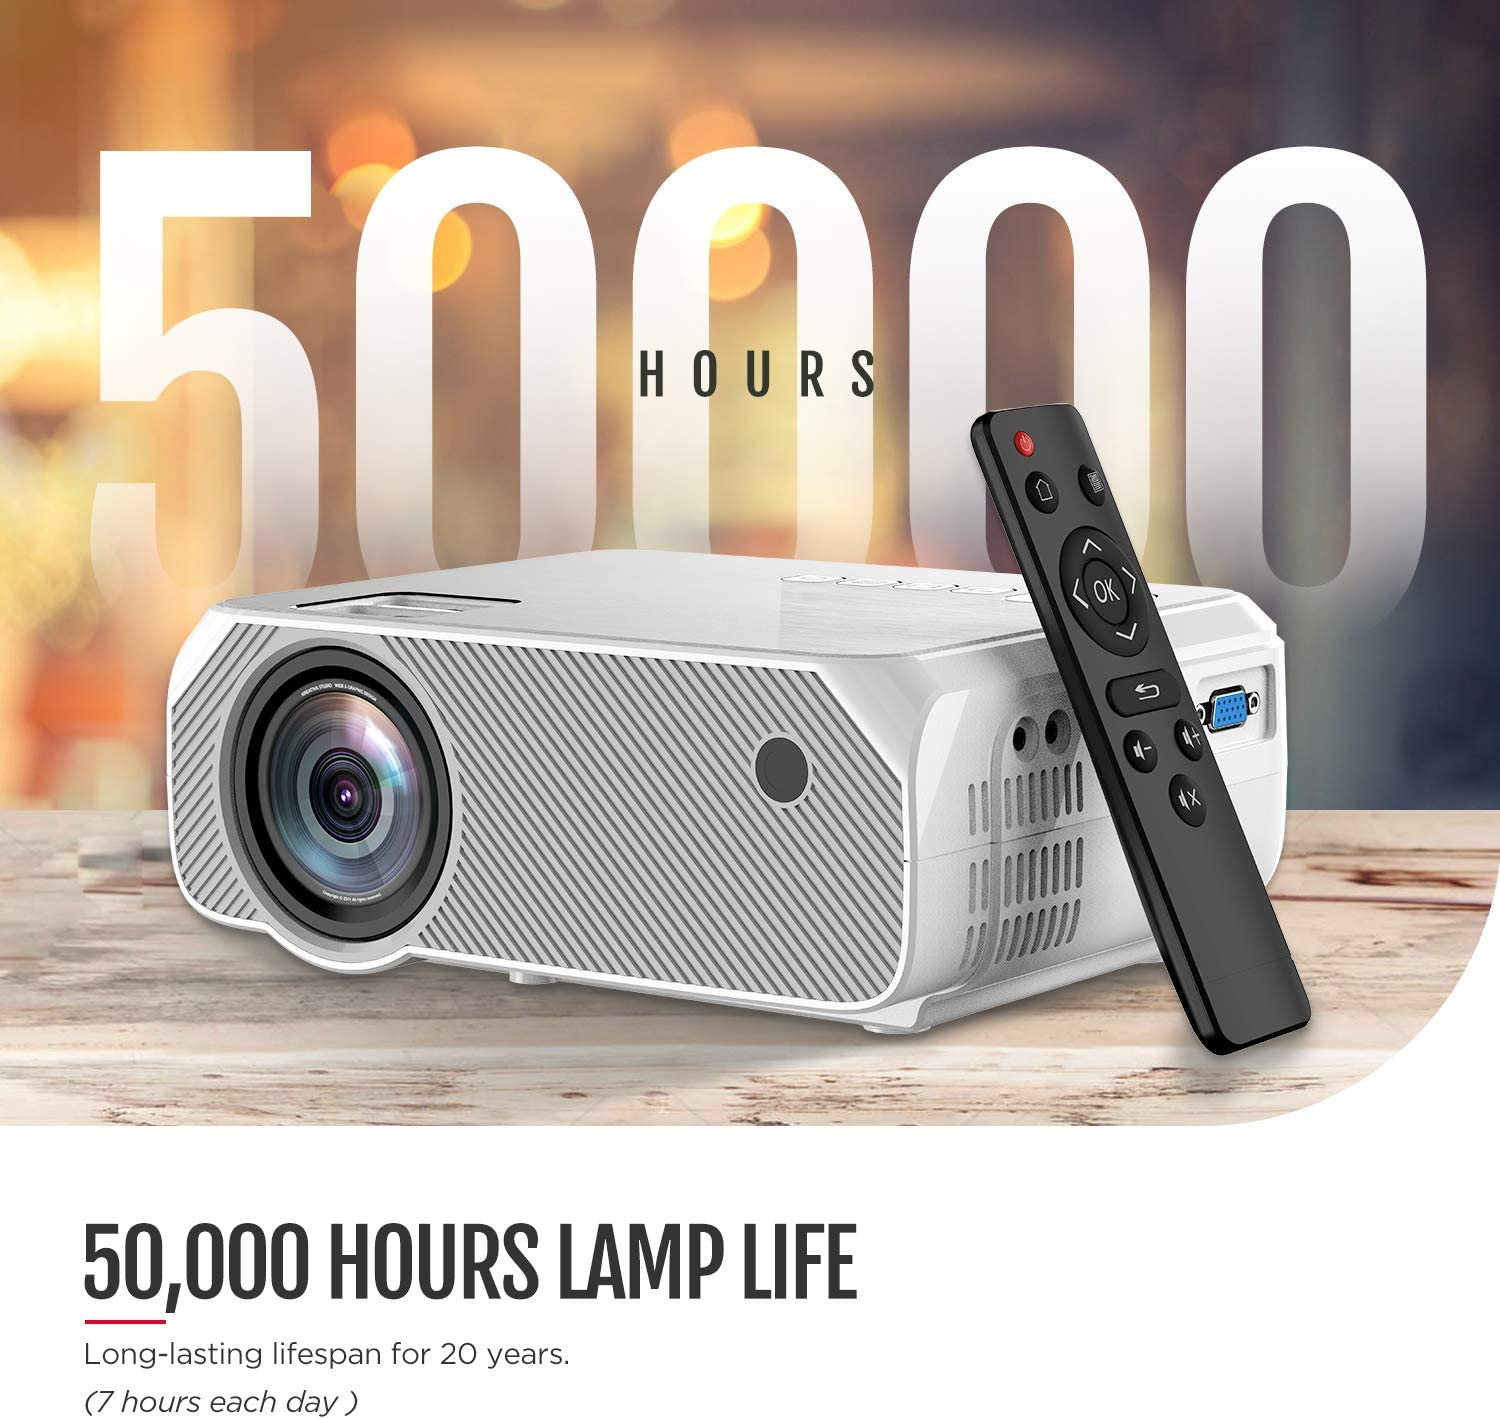 Bomaker Projector AV and USB VGA TF HDMI GC555 Full HD 1920 * 1080P and 250 Display Supported Compatible with TV Stick PS4